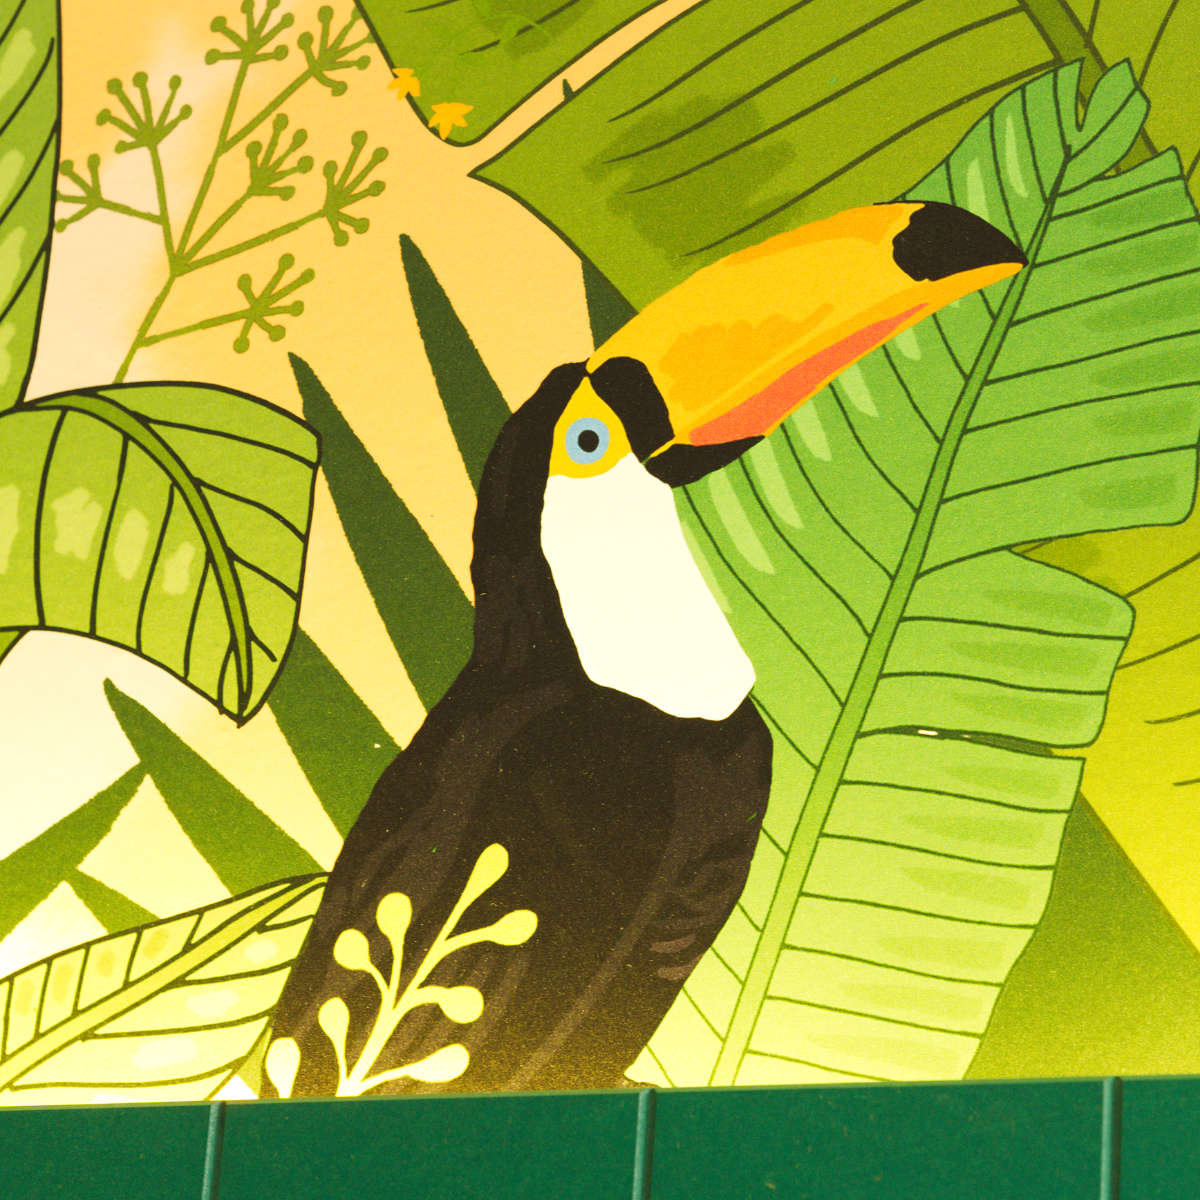 Toucan painting at Hula Juice Bar, Edinburgh